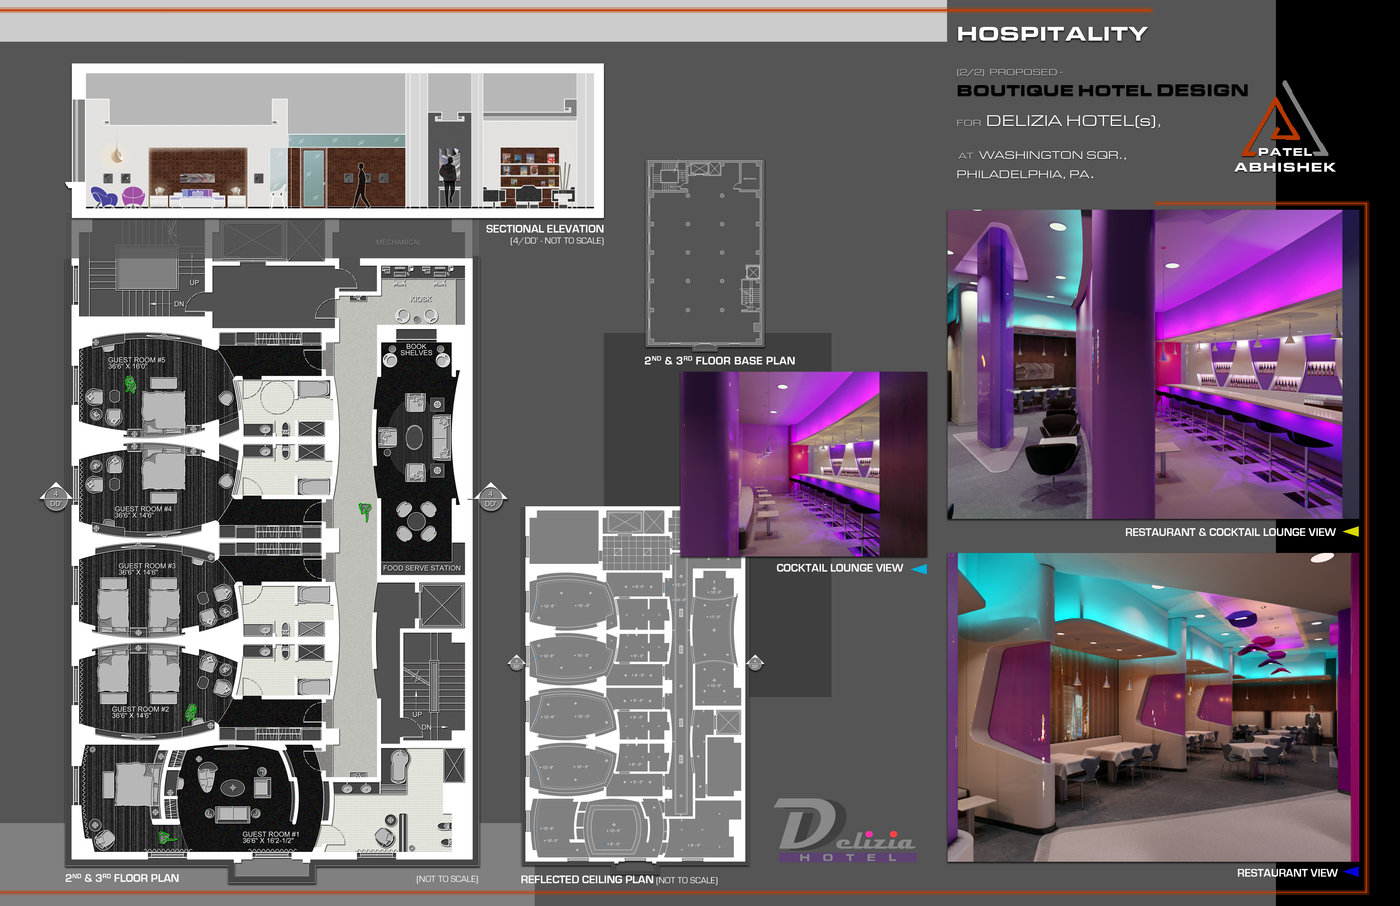 interior architecture design portfolio sample by abhishek patel